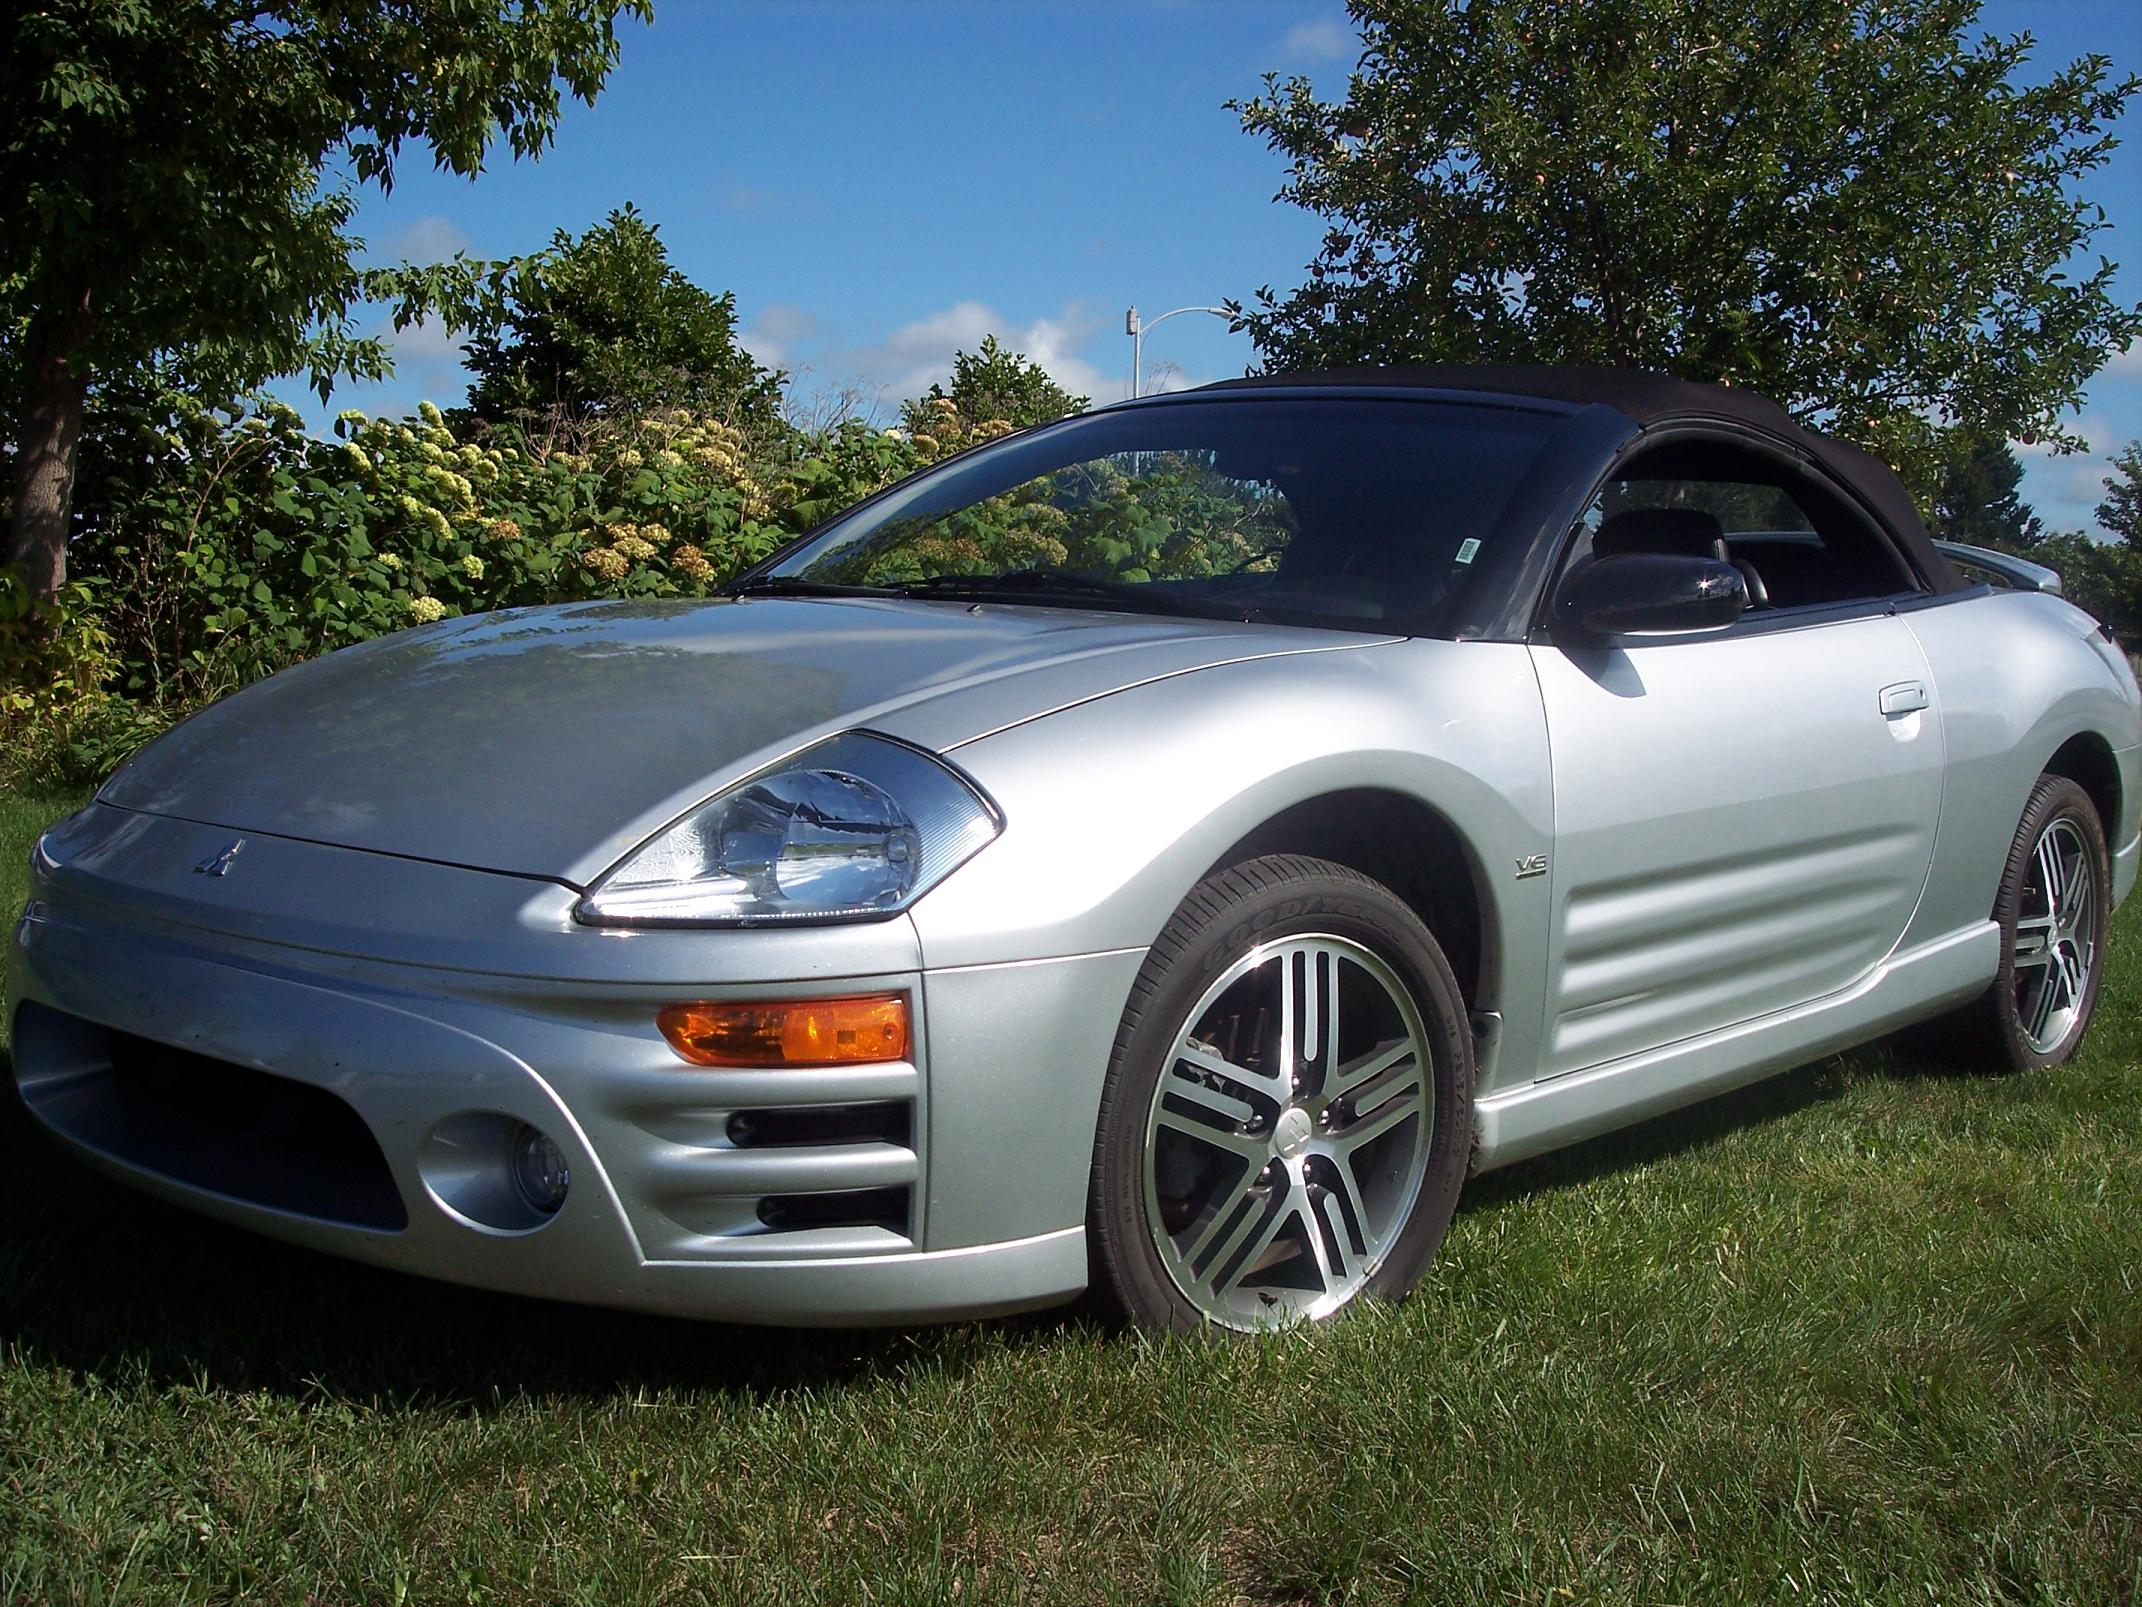 2003 Mitsubishi Eclipse Decal